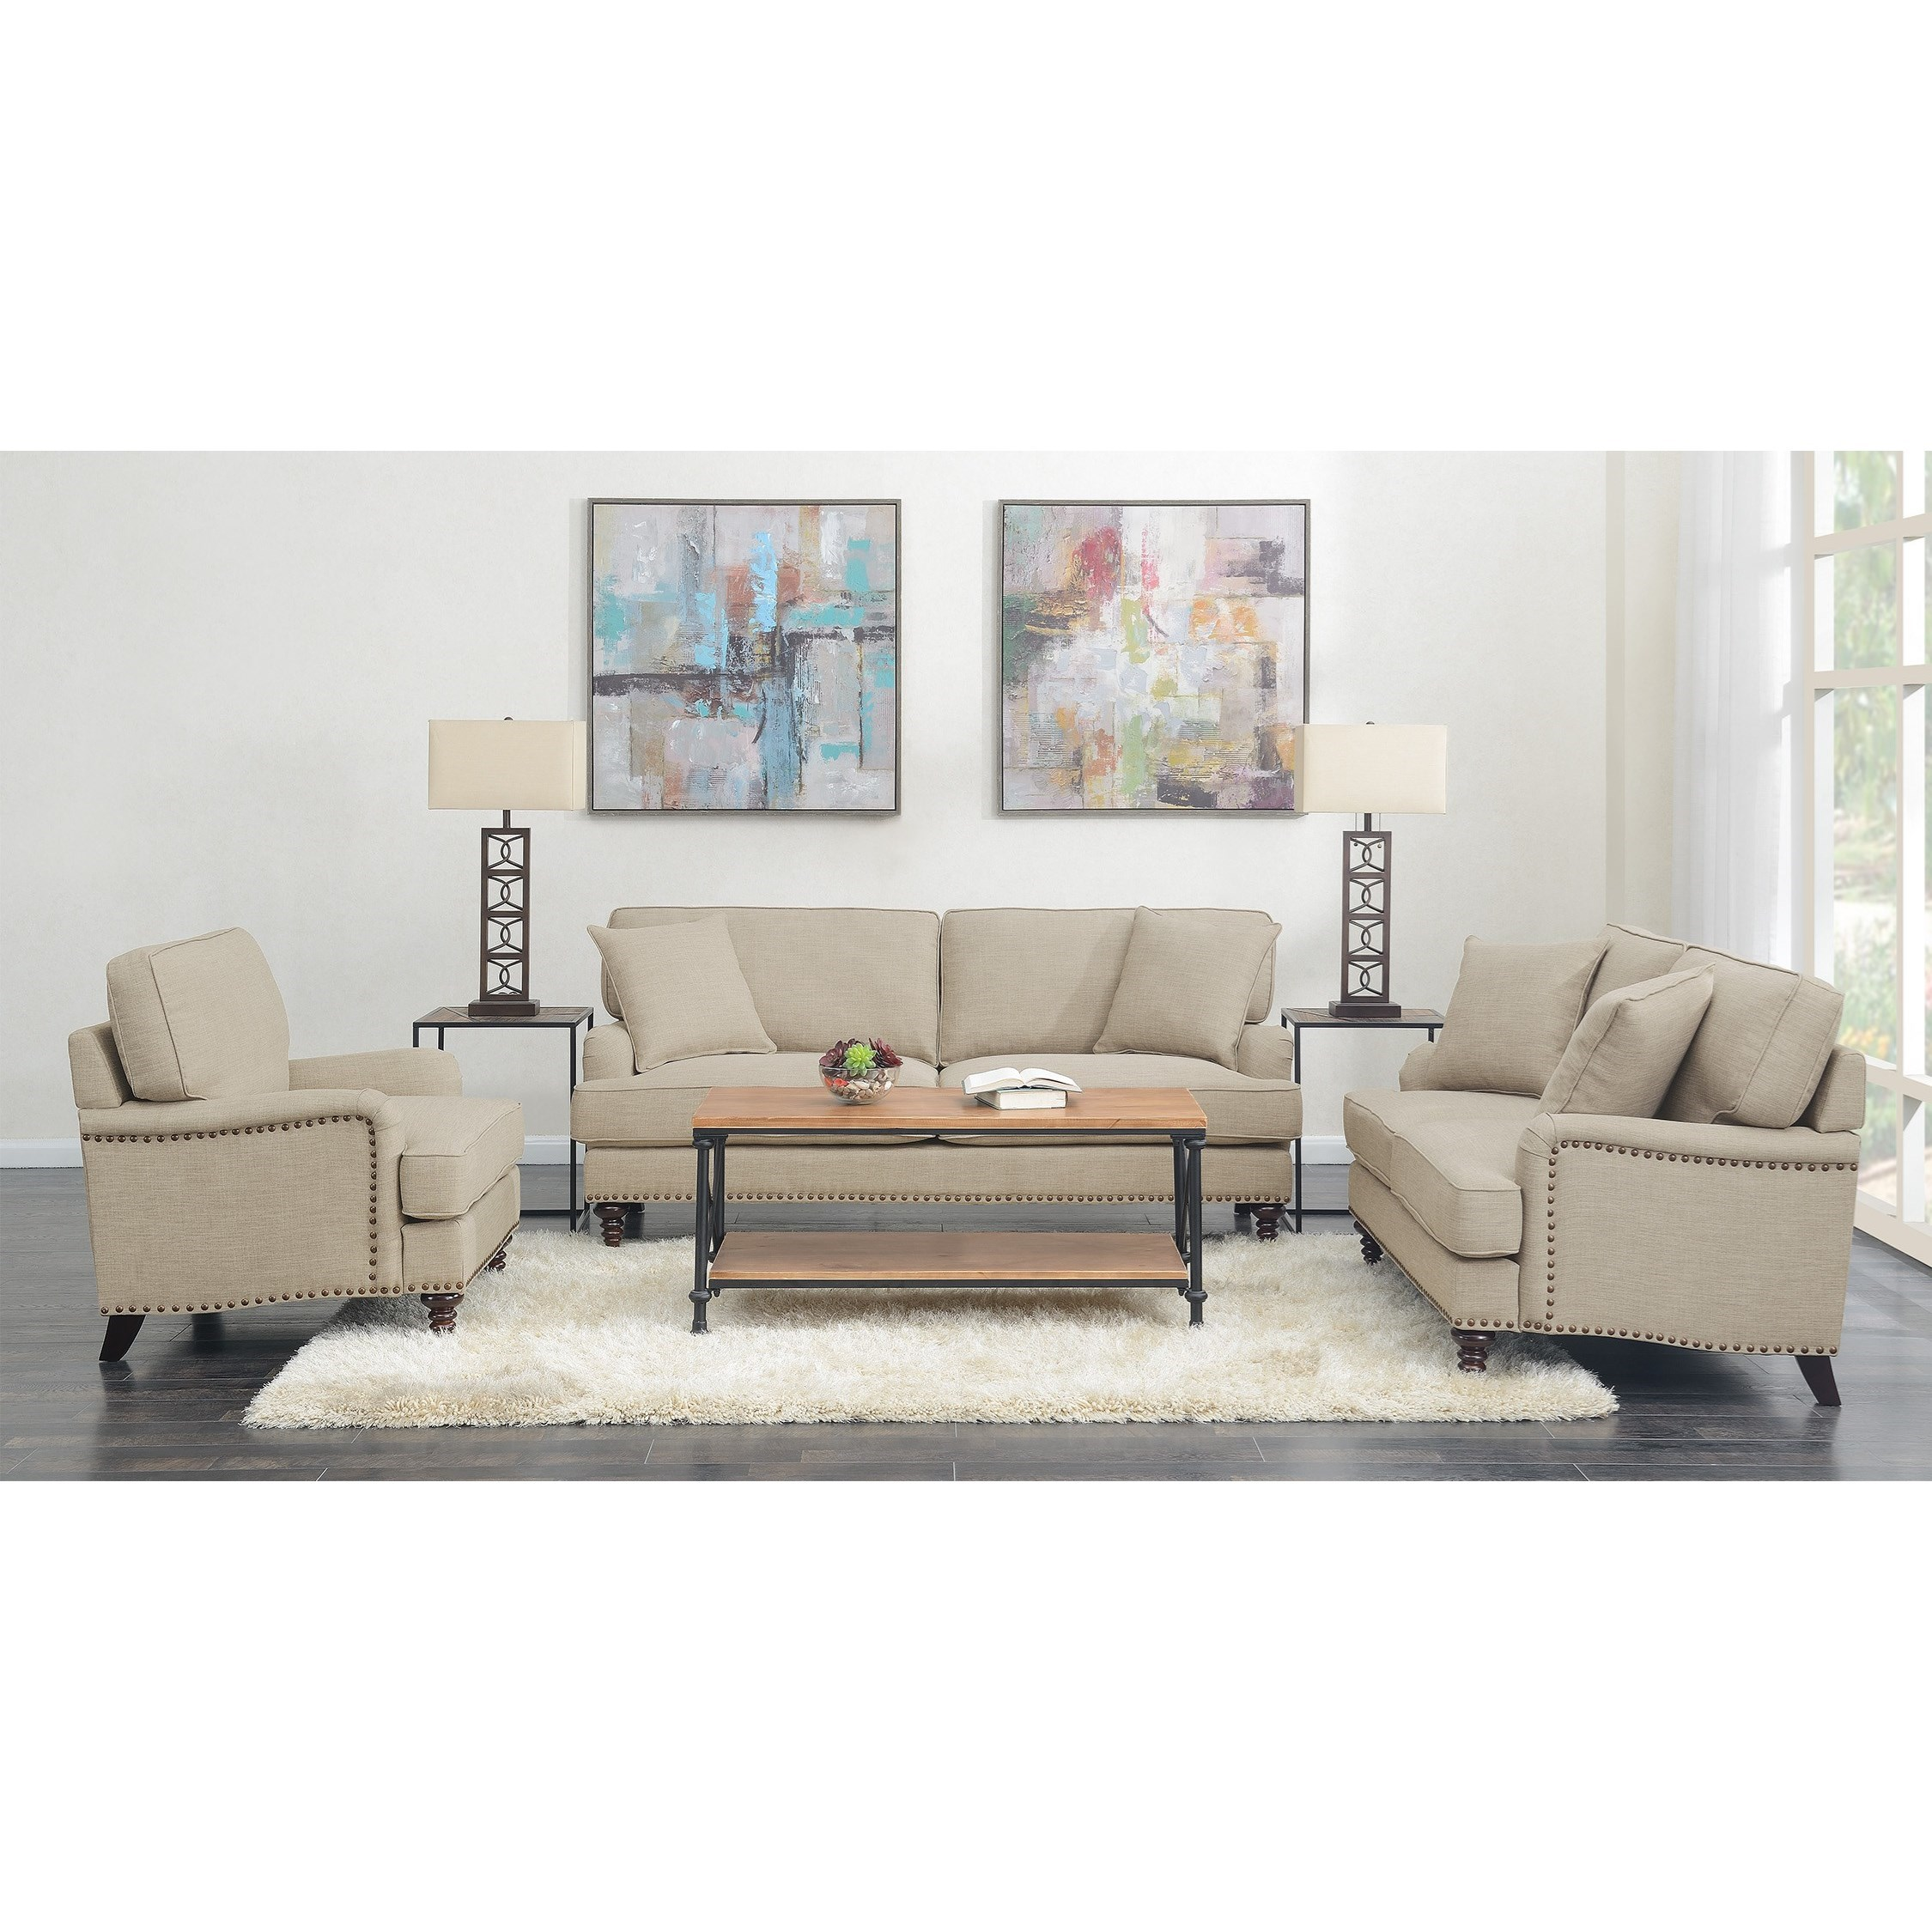 Abby 3PC Set-Sofa, Loveseat & Chair by Elements International at Goffena Furniture & Mattress Center